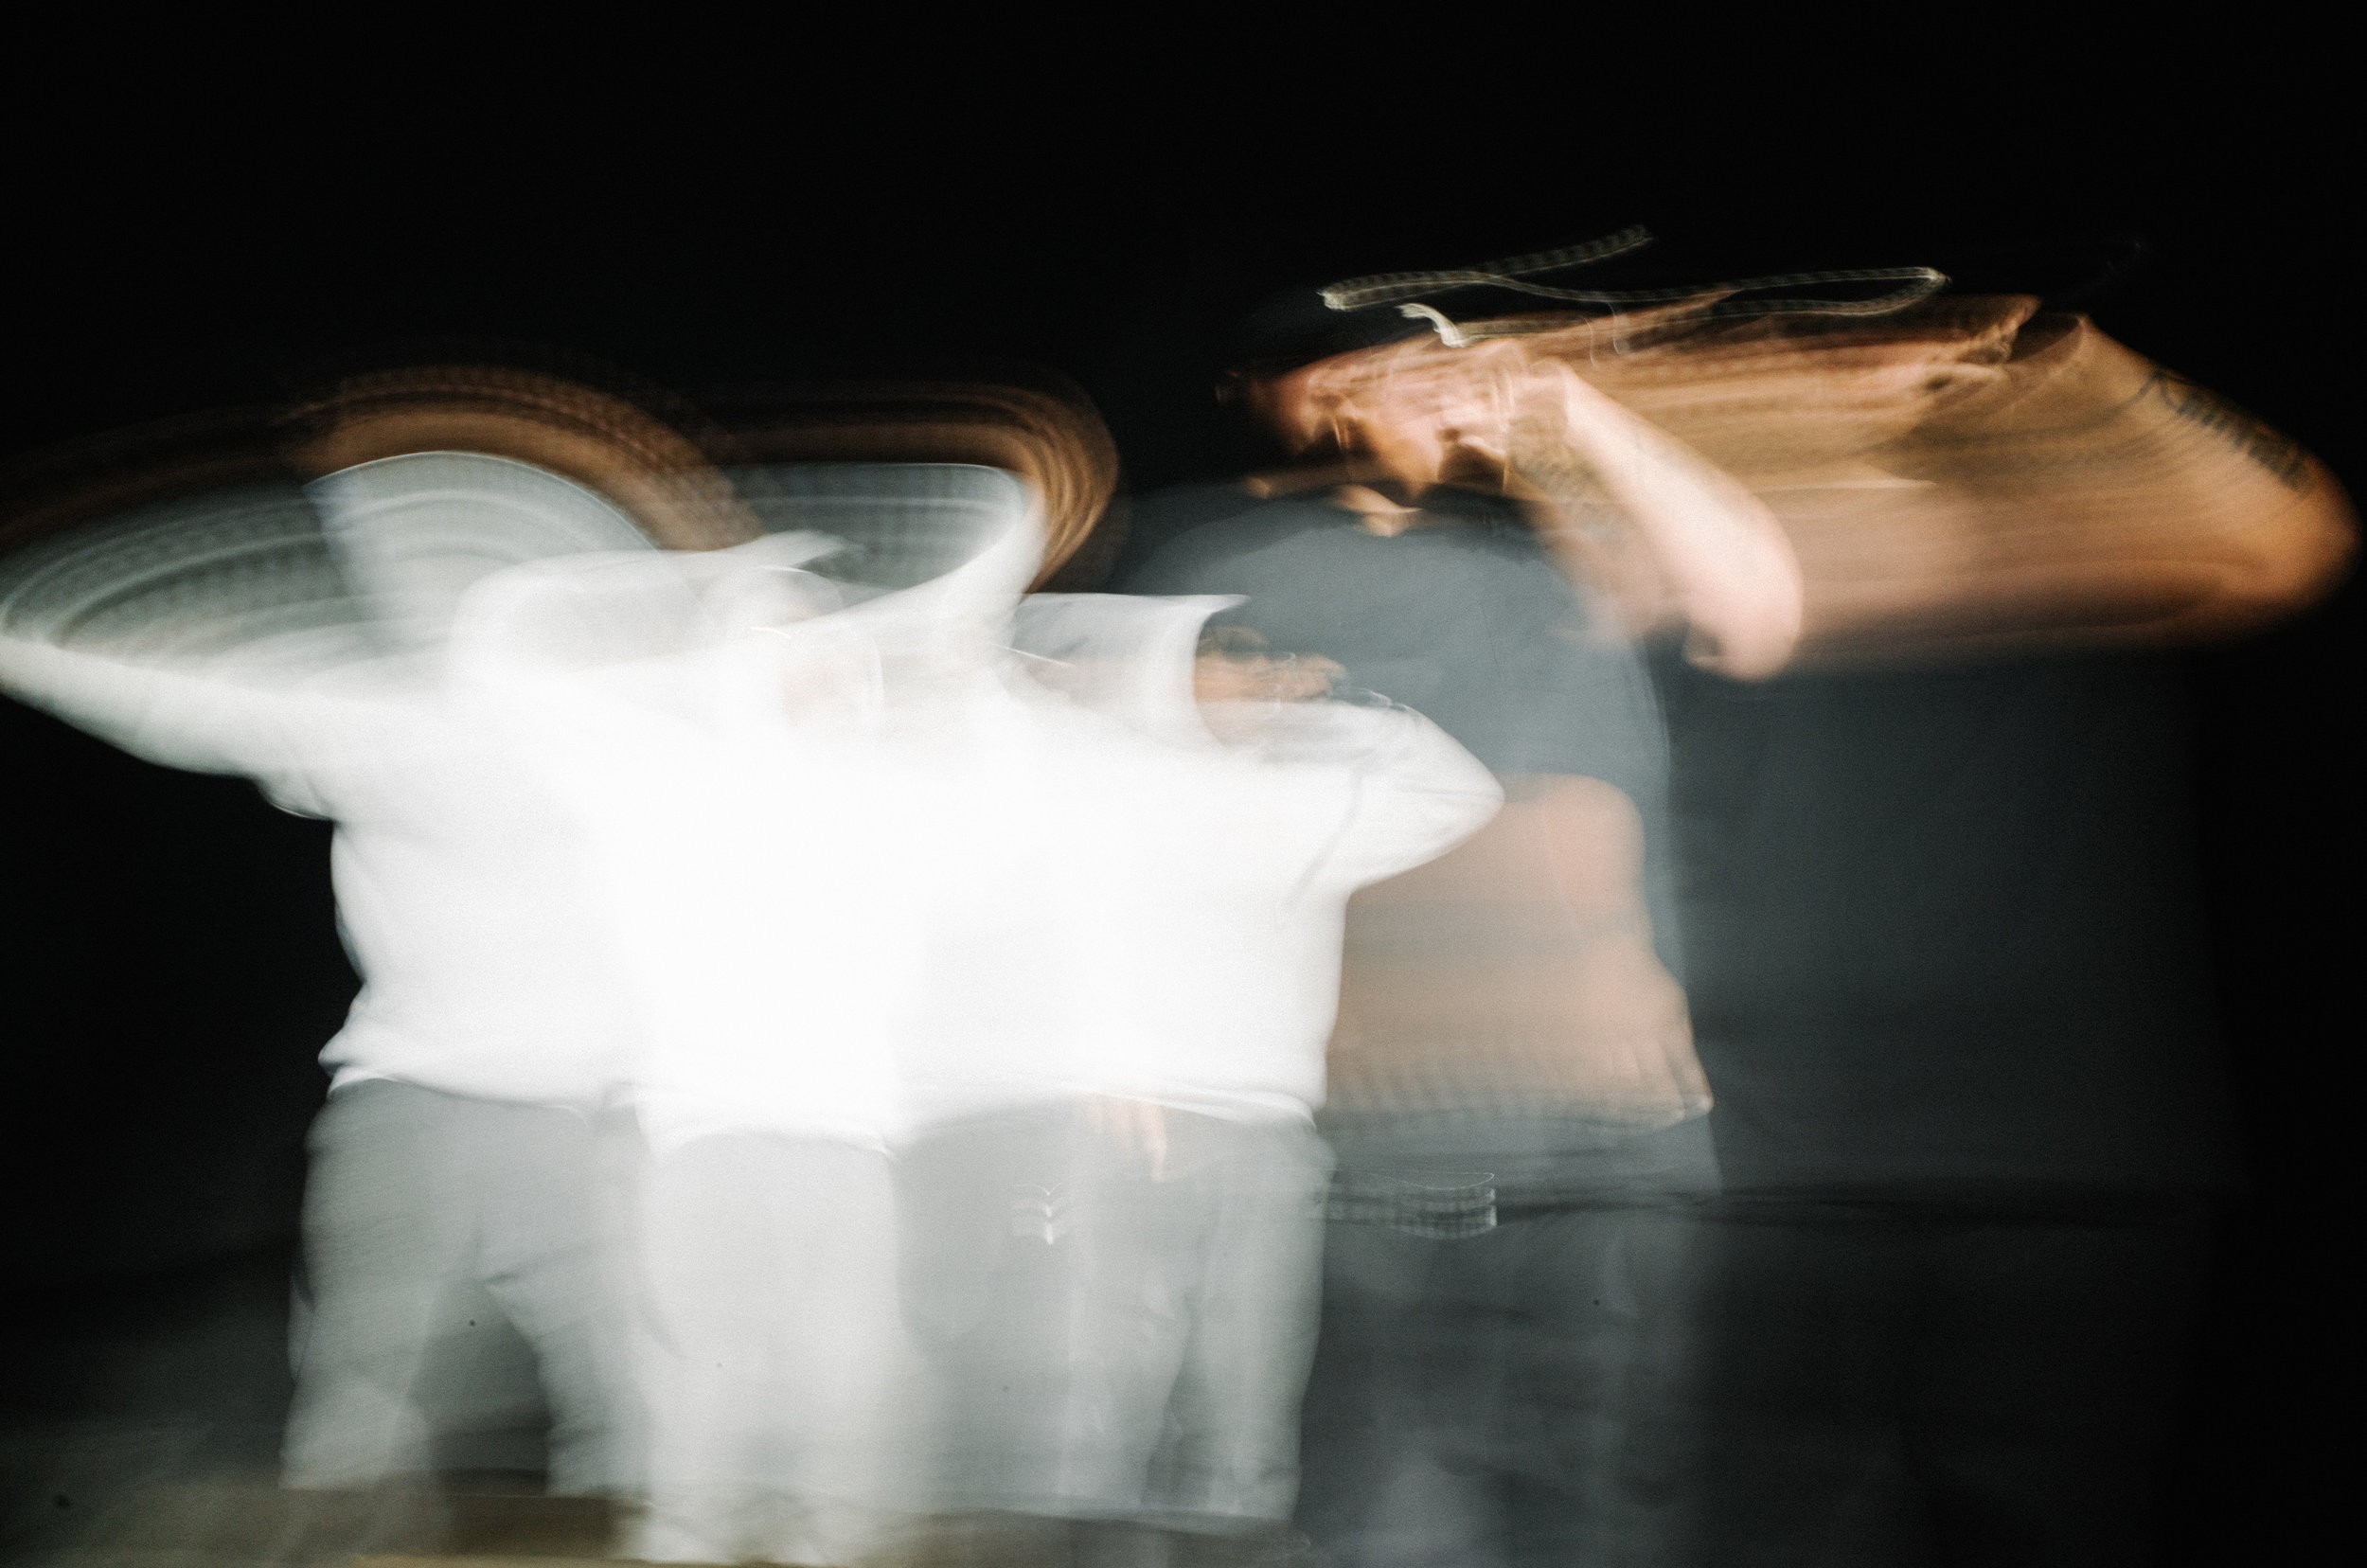 6 second exposure of Damian and Lenny performing